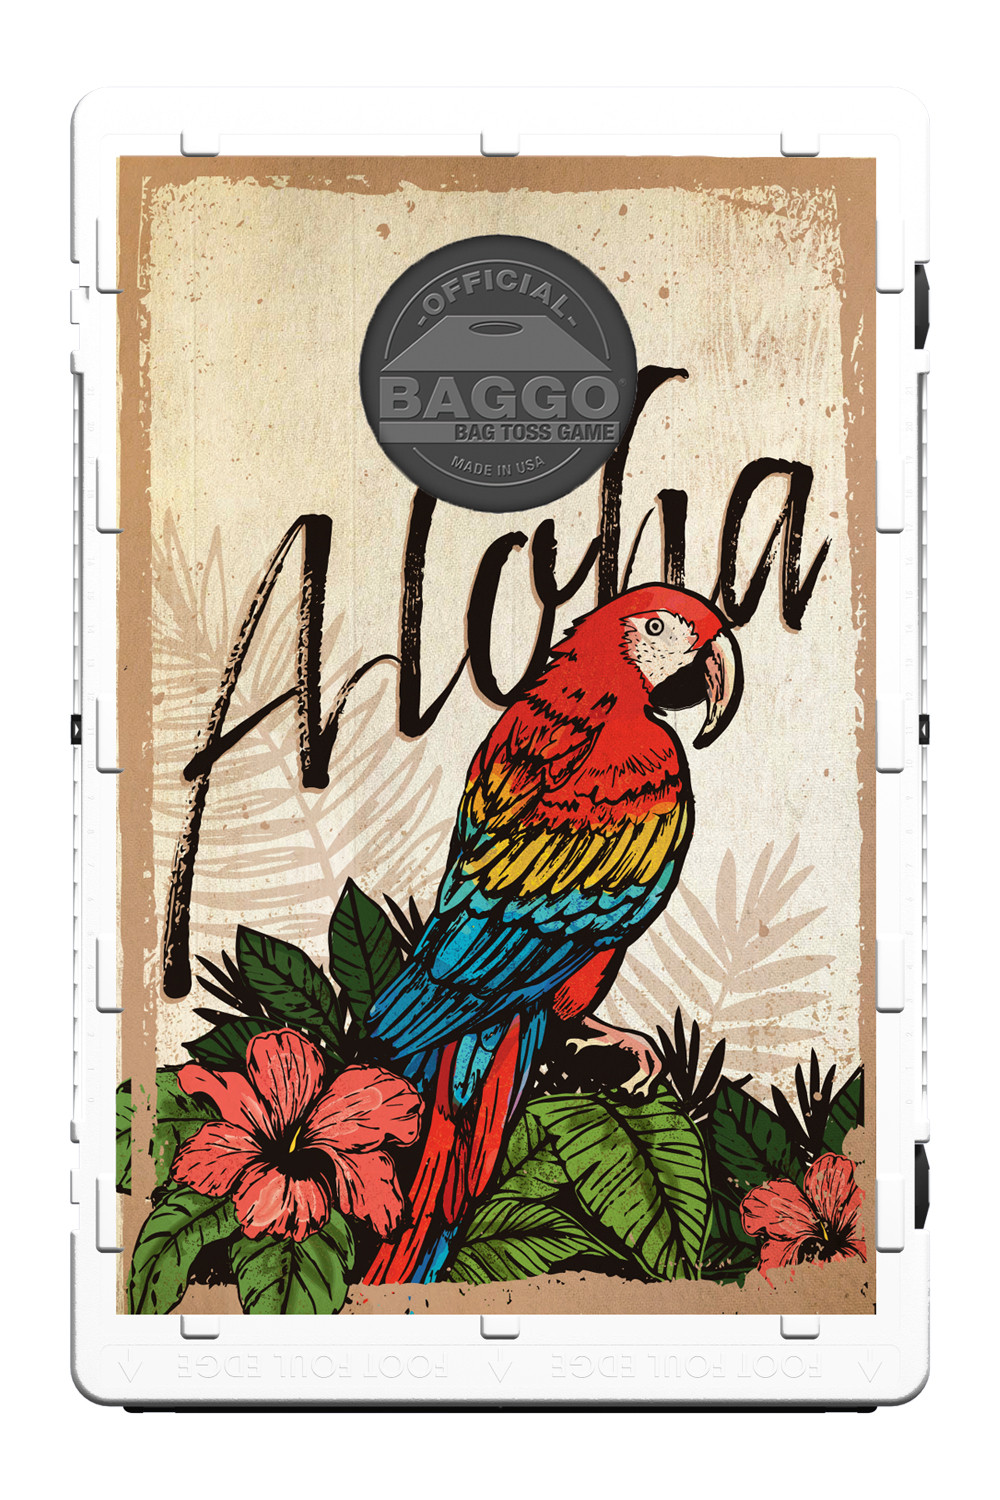 Aloha Screens (only) by Baggo